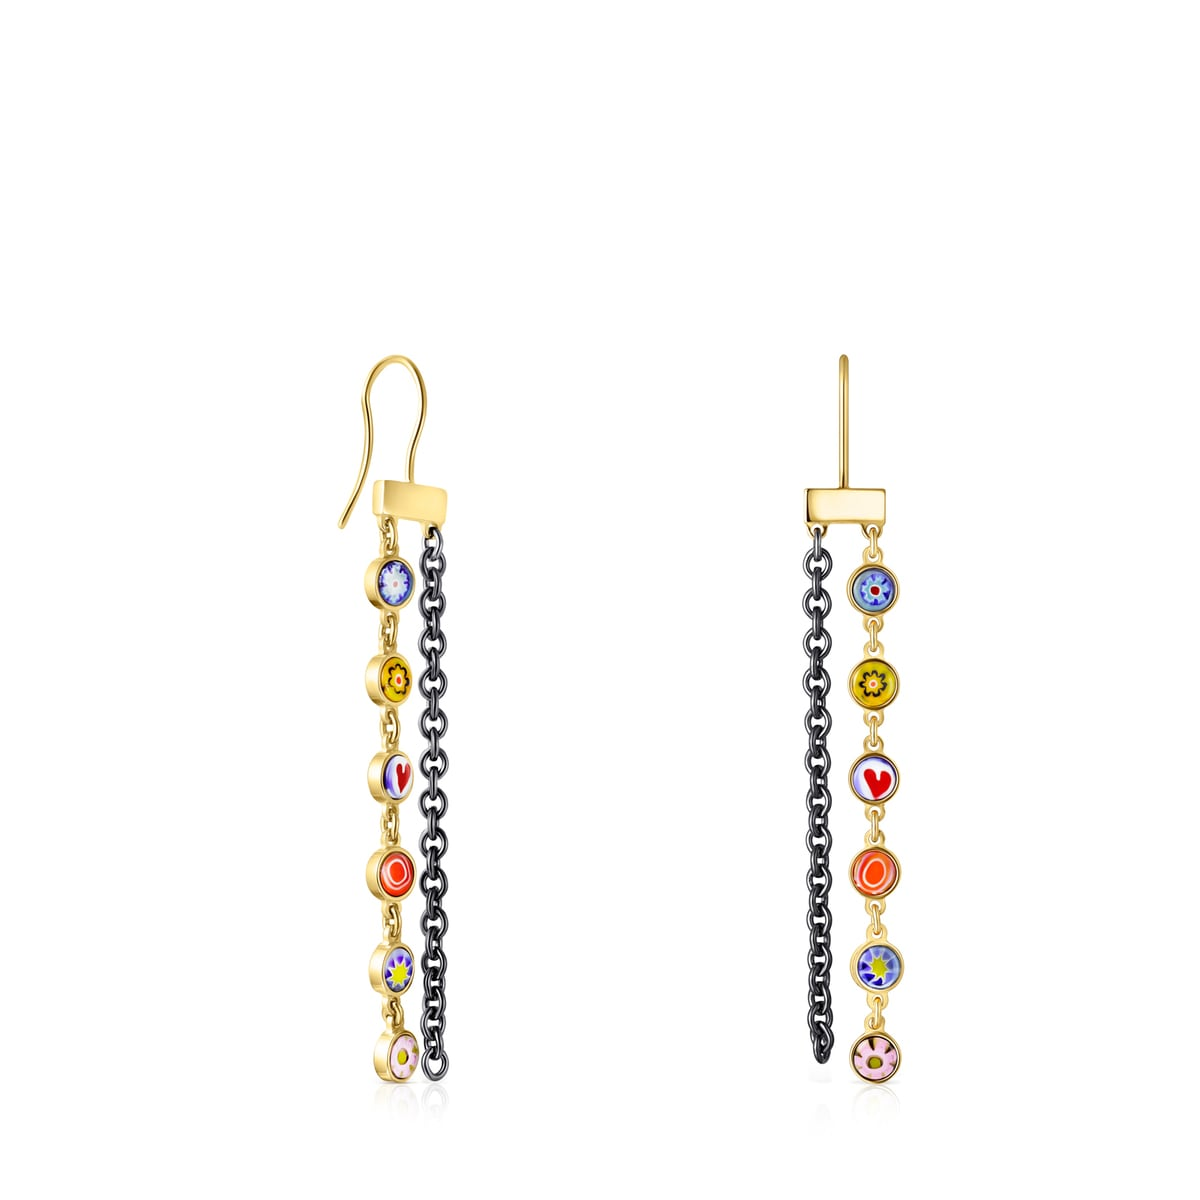 Long Minifiore Earrings in Gold Vermeil, Dark Silver and Murano Glass